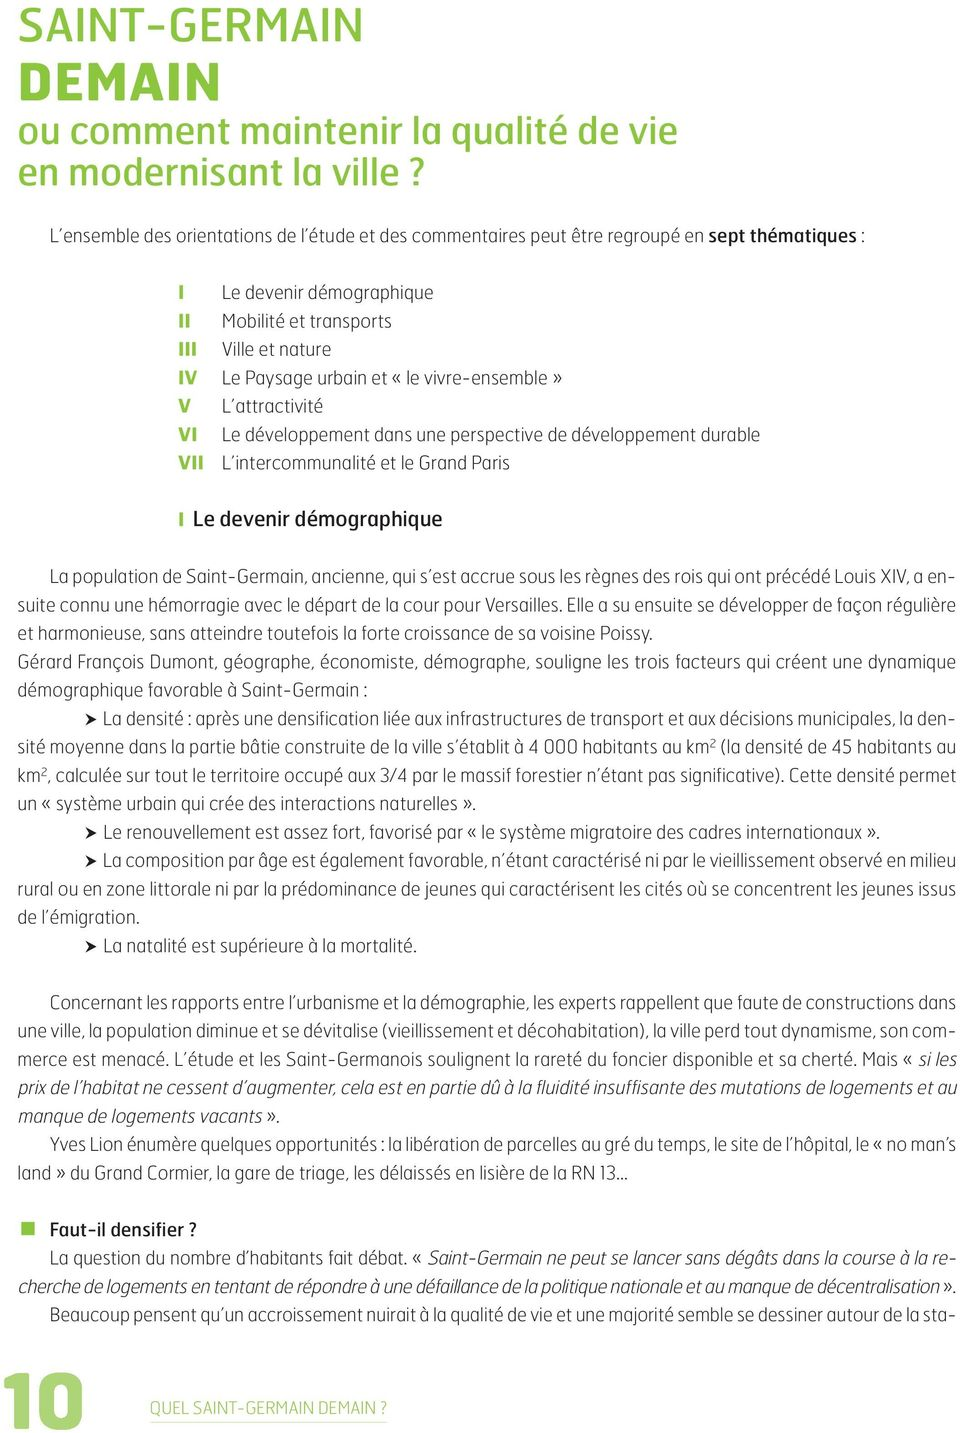 «le vivre-ensemble» V L attractivité VI Le développement dans une perspective de développement durable VII L intercommunalité et le Grand Paris I Le devenir démographique La population de